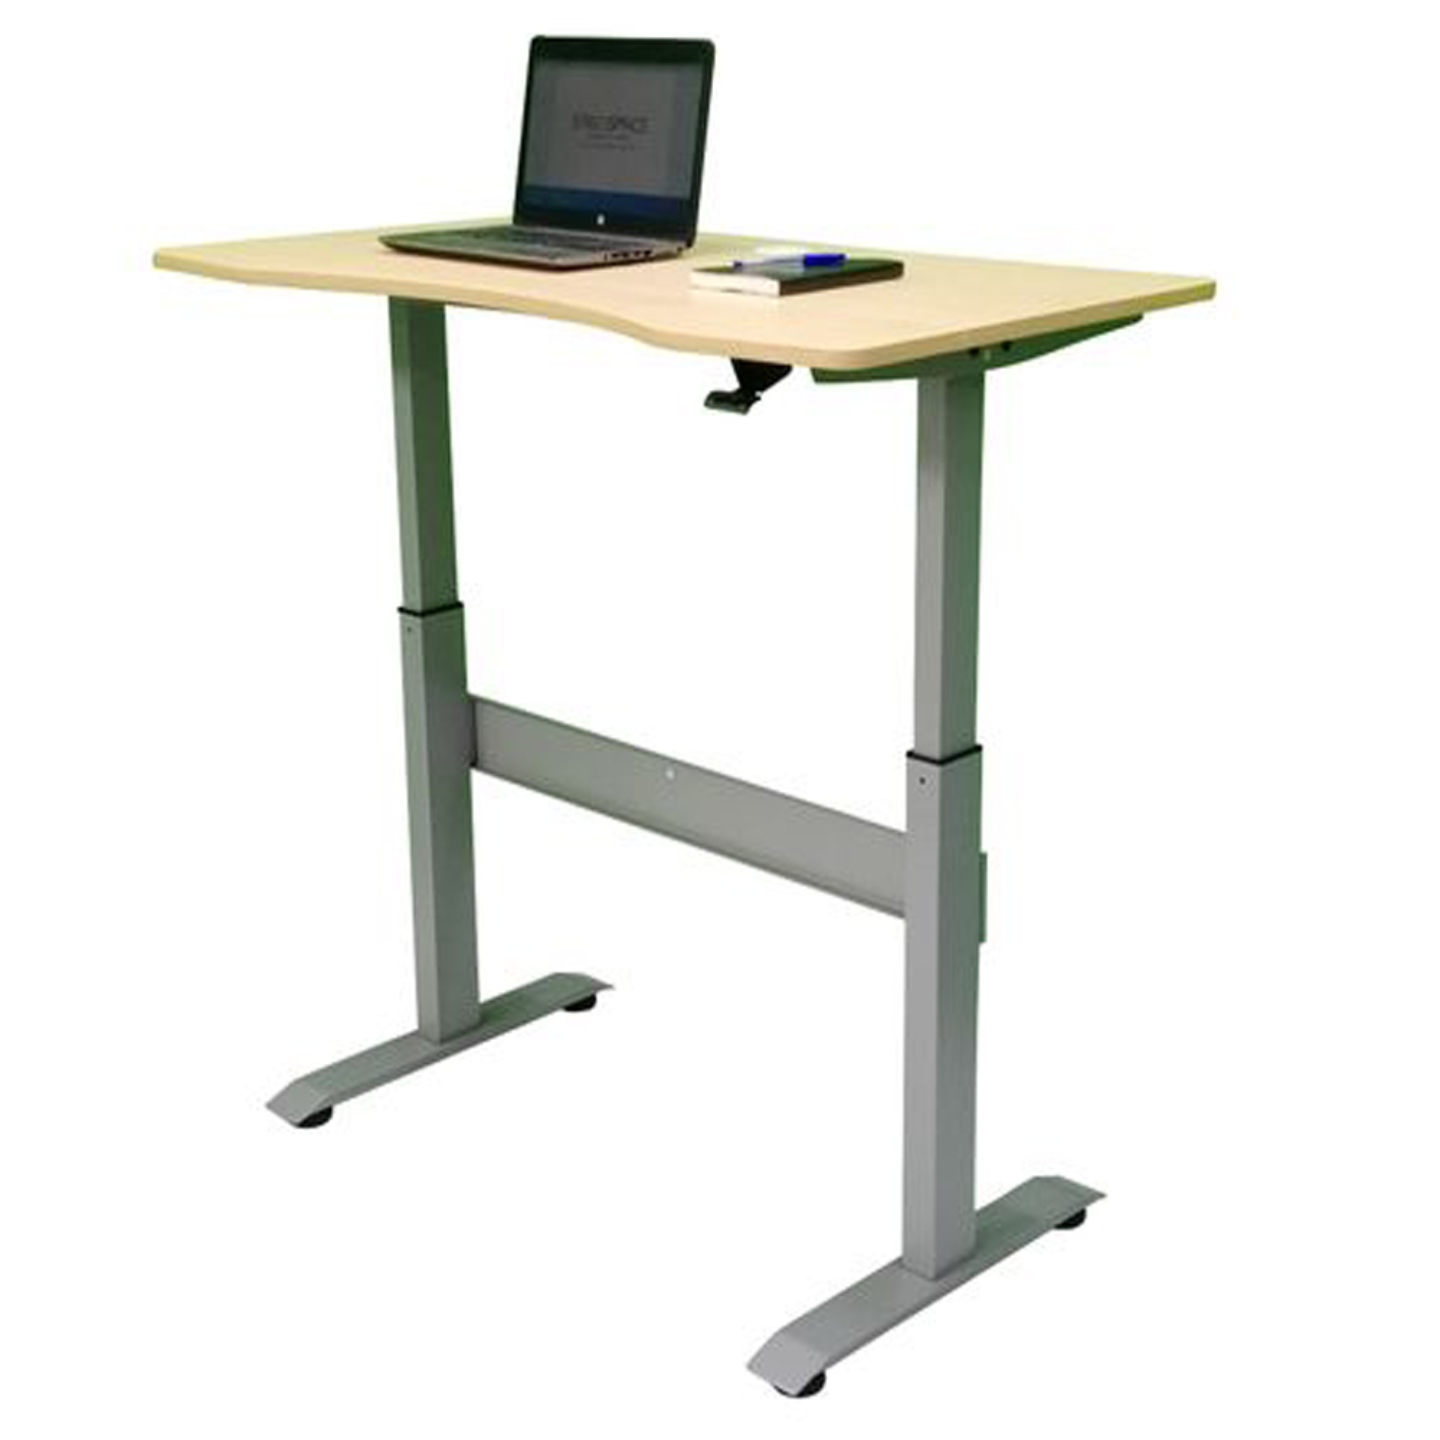 PNEUMATIC LIFT SIT STAND DESK GREY